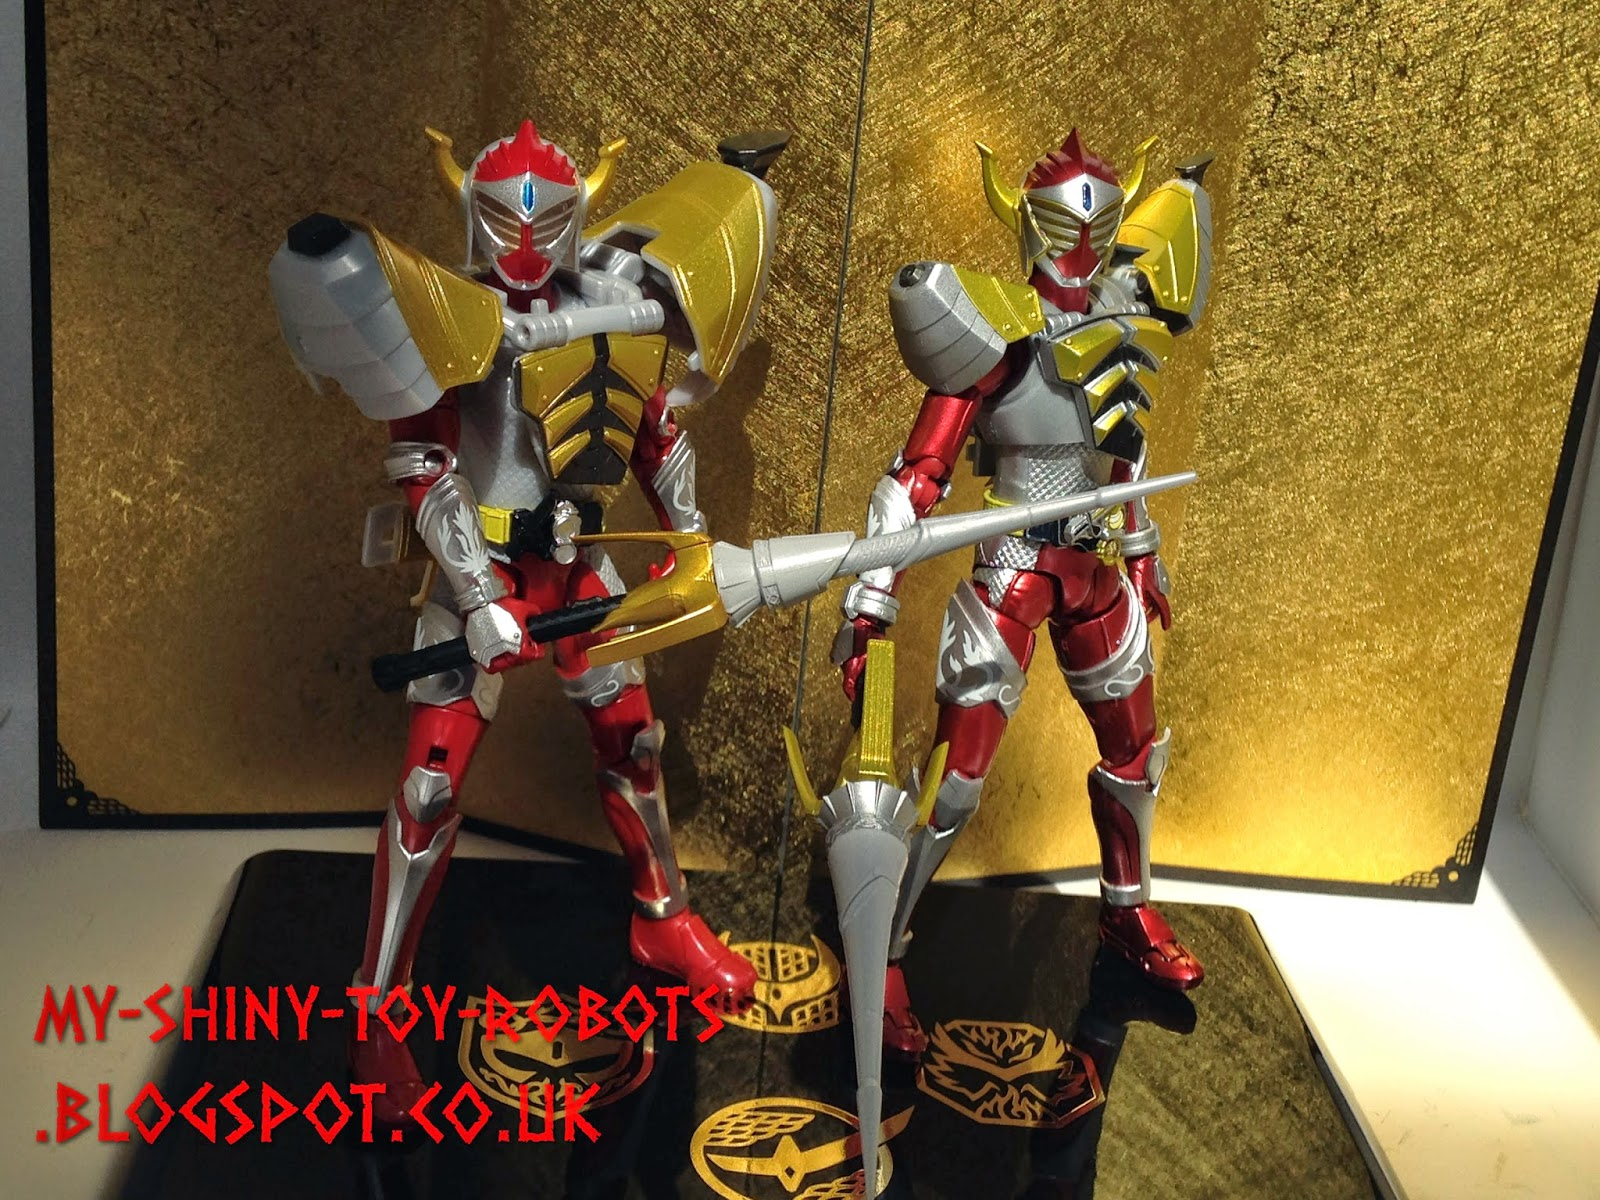 Arms Change/Figuart Comparison 01